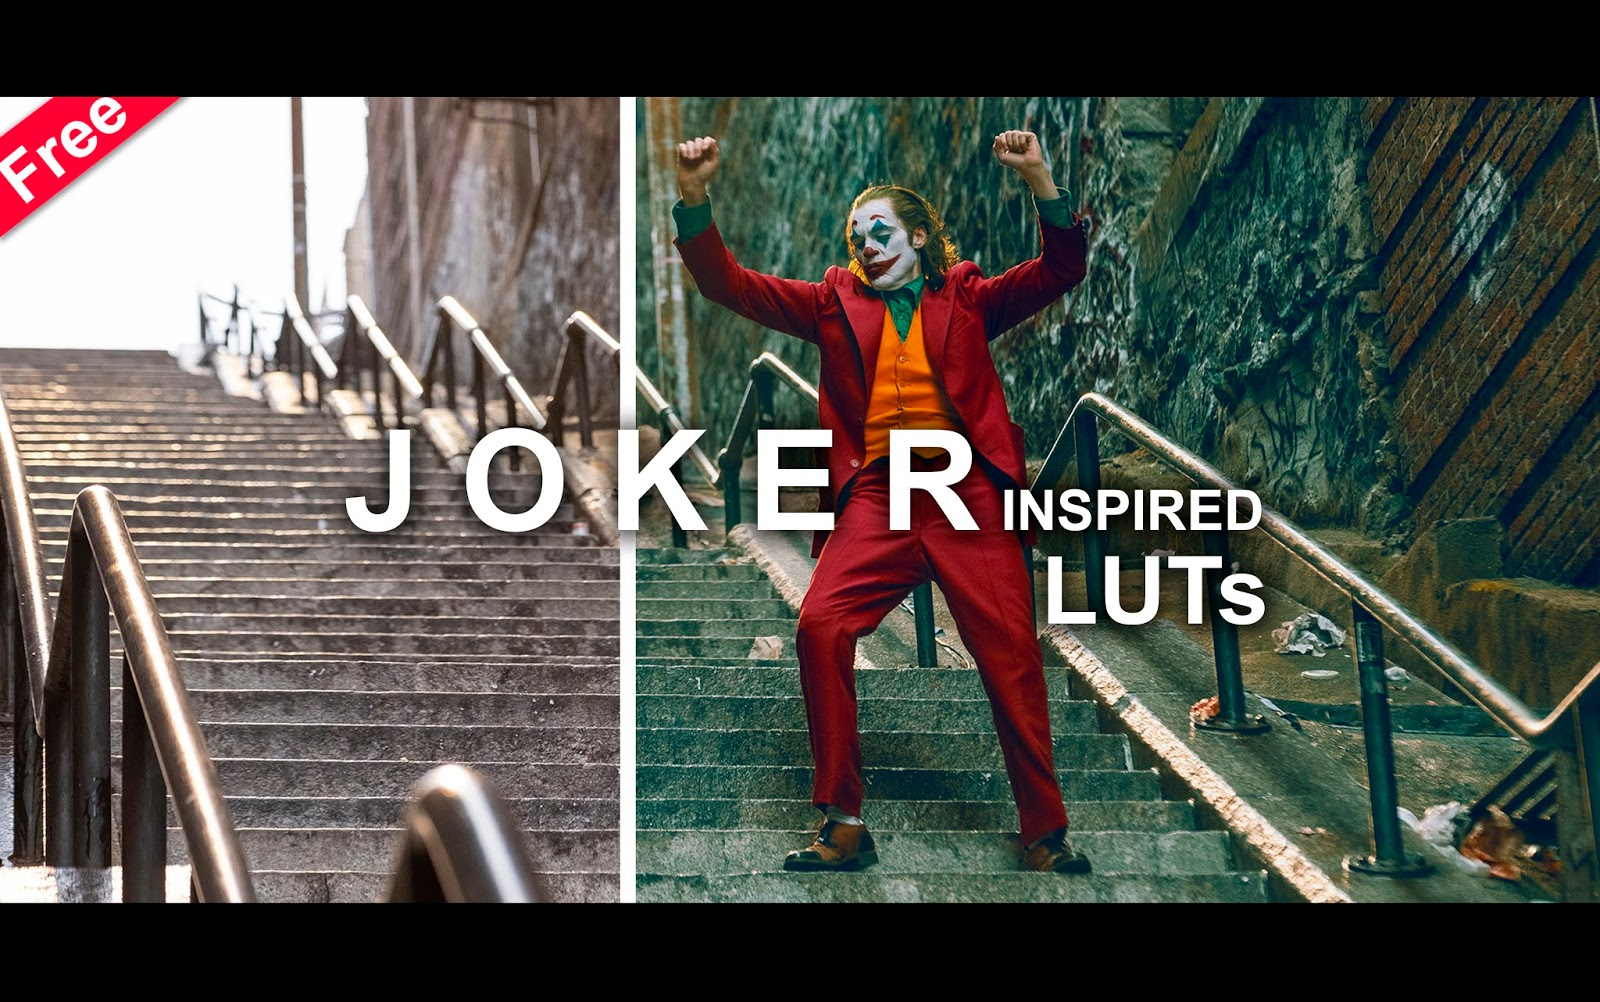 Download Free Joker Movie LUTs for Free | How to Color Grade Your Videos in Premier Pro, Adobe After Effects,  Photoshop